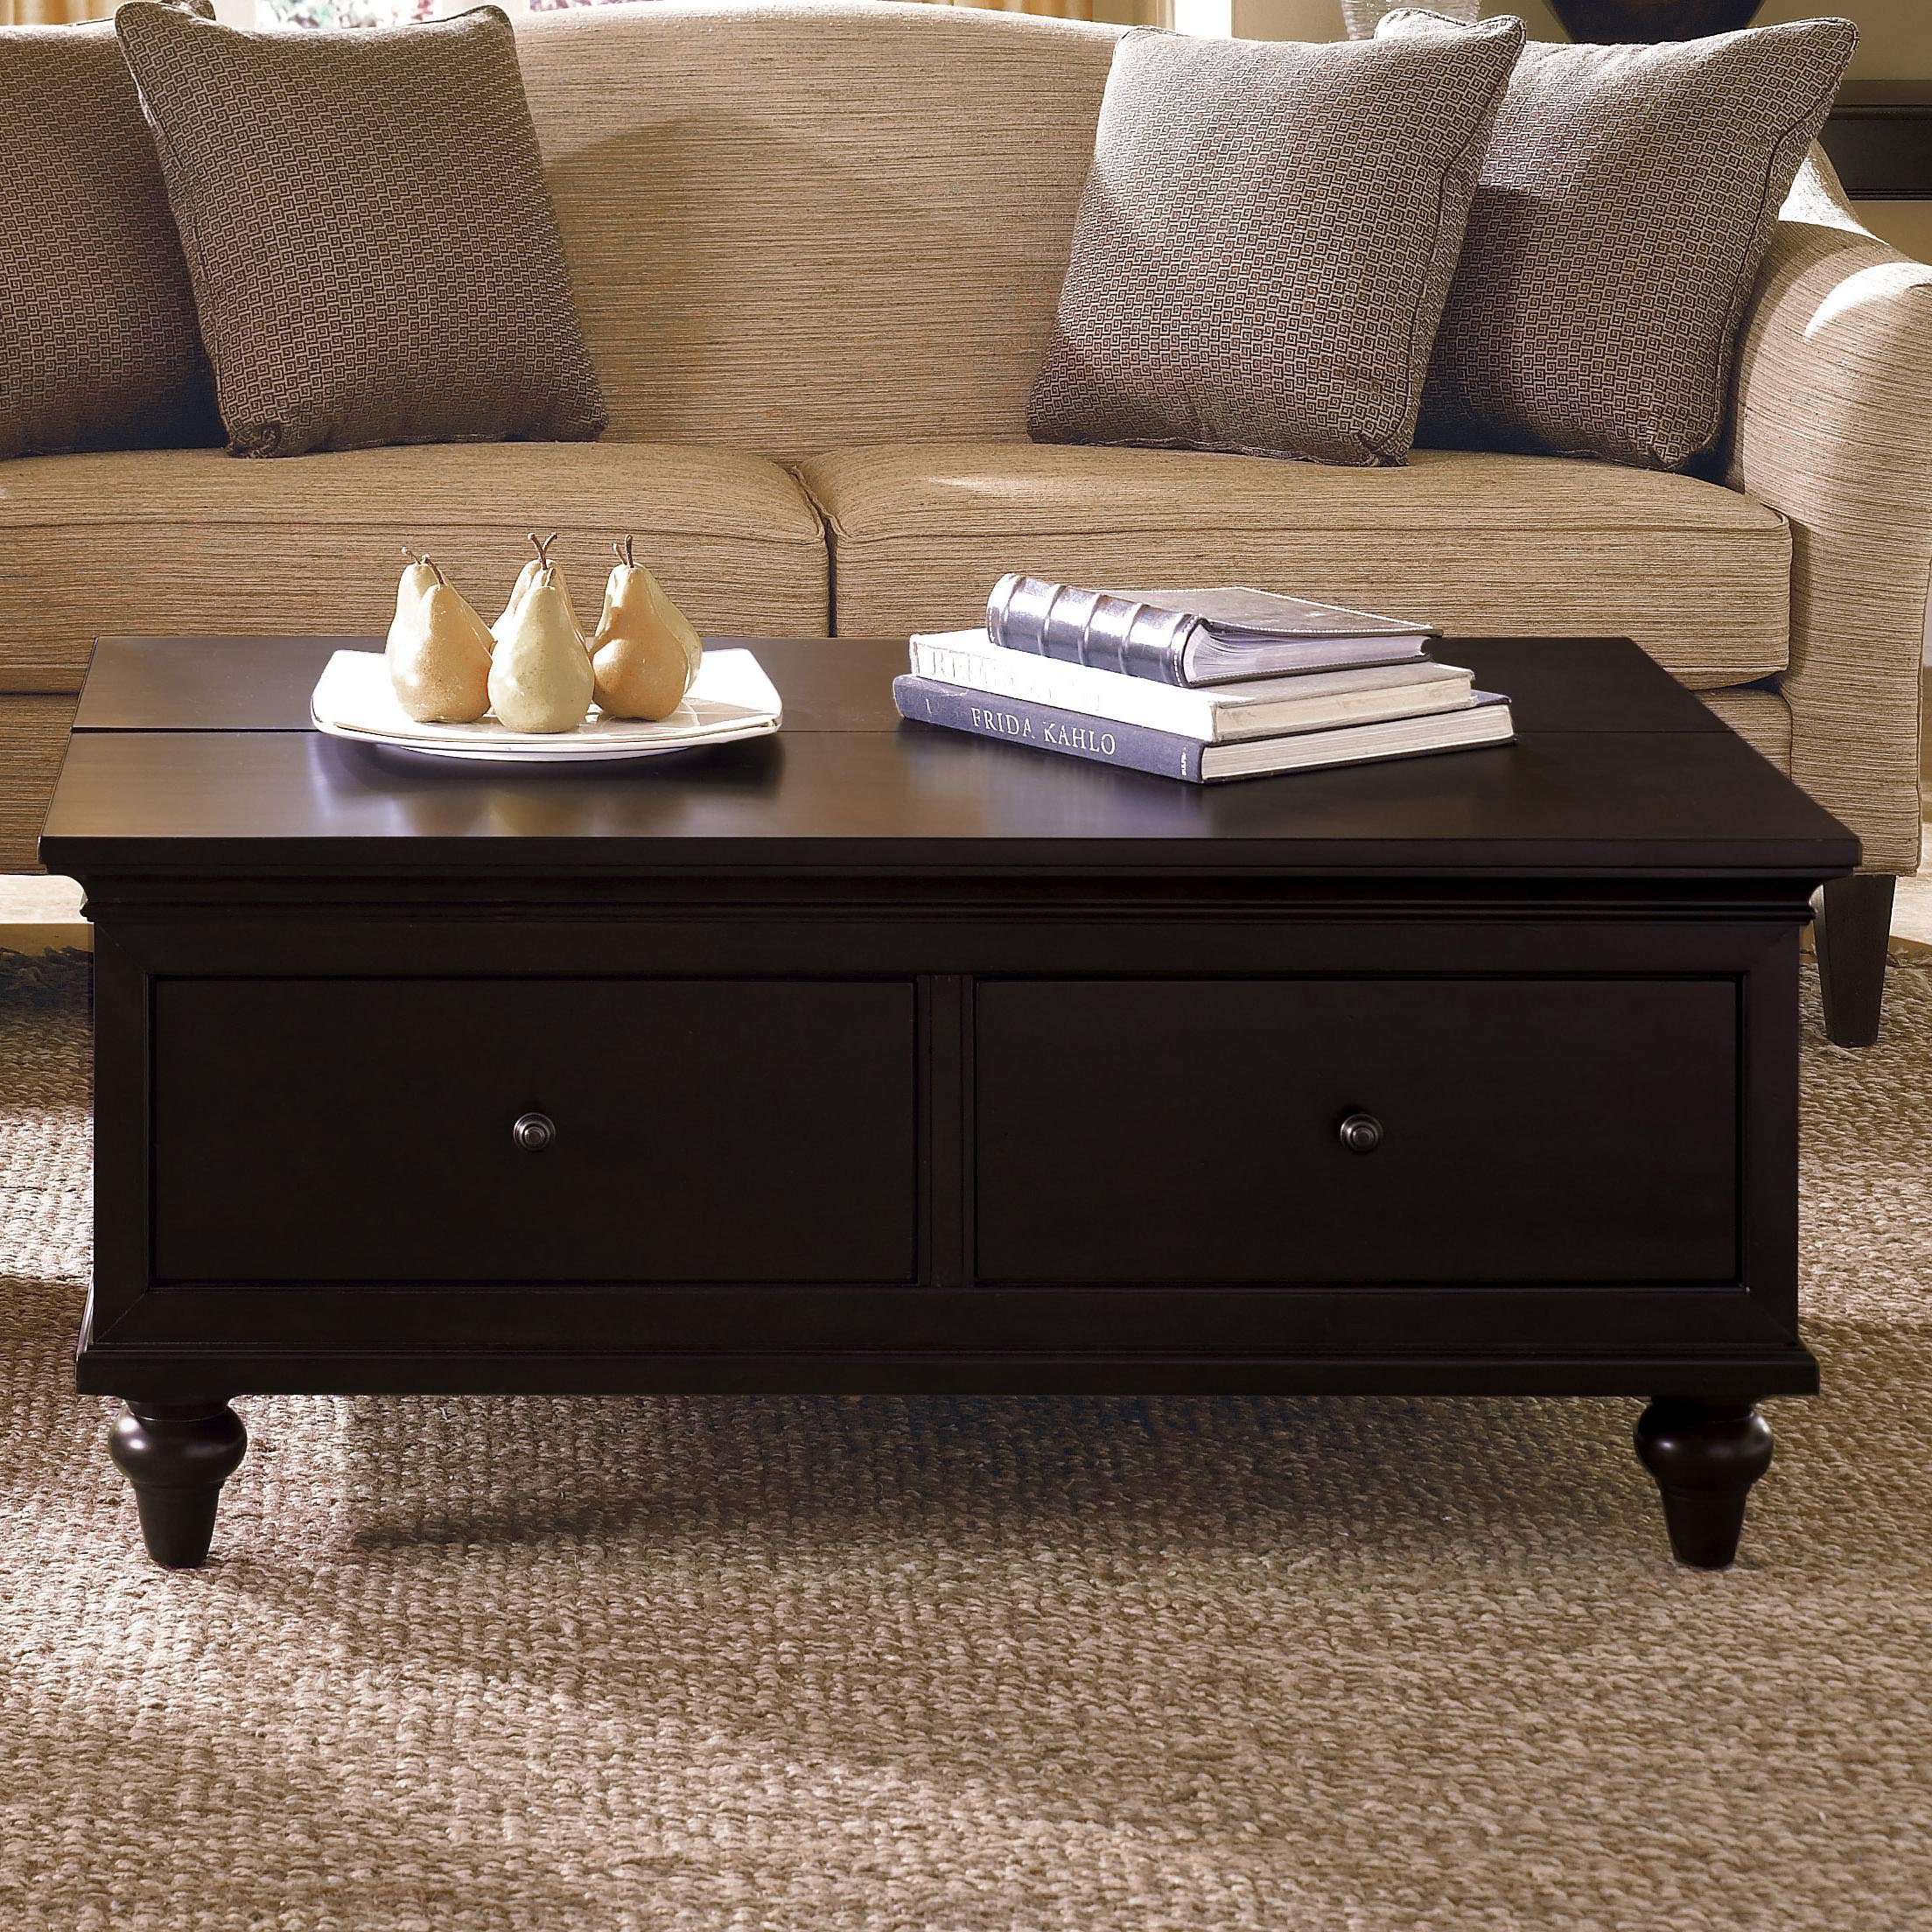 Small coffee table with drawers design ideas